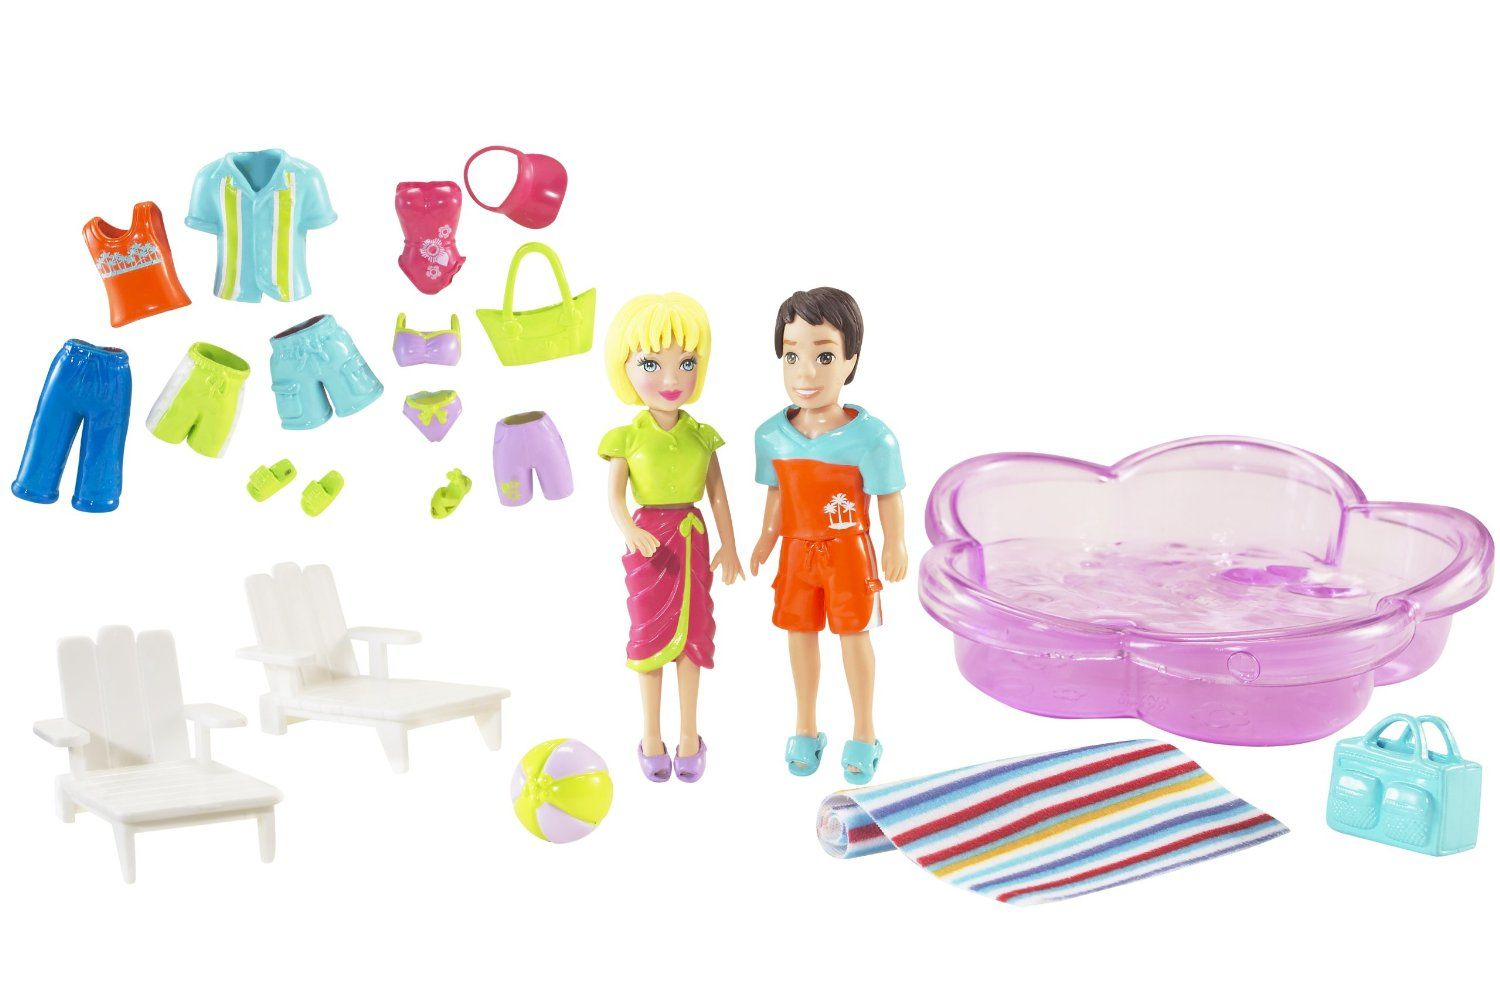 Amazon.com: Polly Pocket Poolin' Around Polly and Todd Playset: Toys & Games